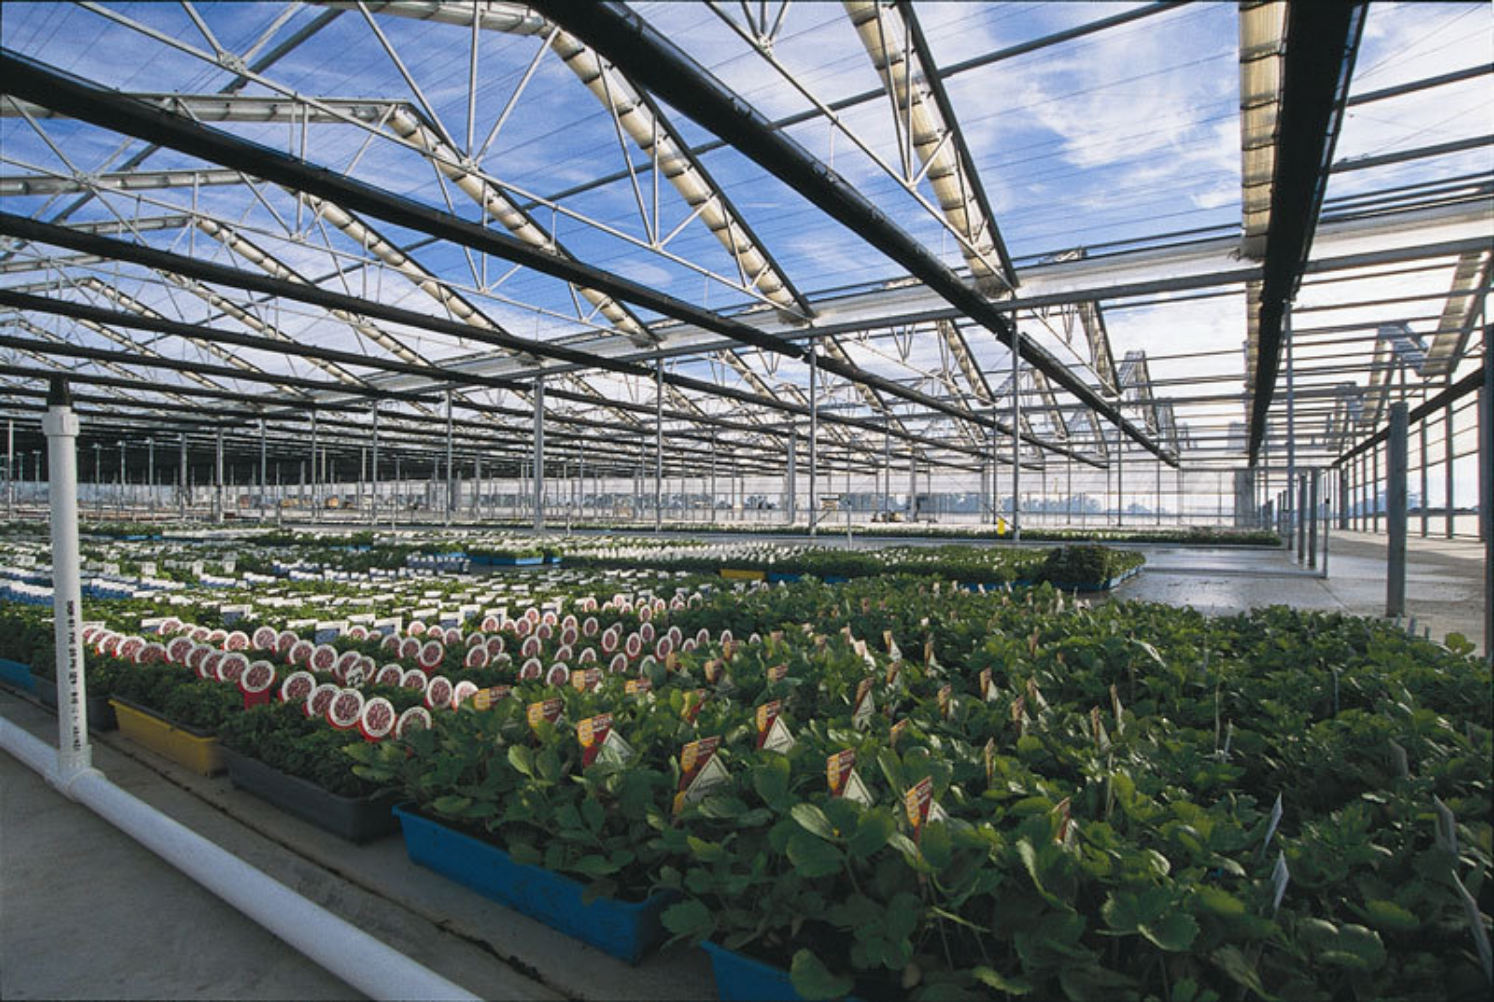 Why You Should Use Laserlite Polycarbonate Sheets For Your Greenhouse Alsynite One Nz Ltd